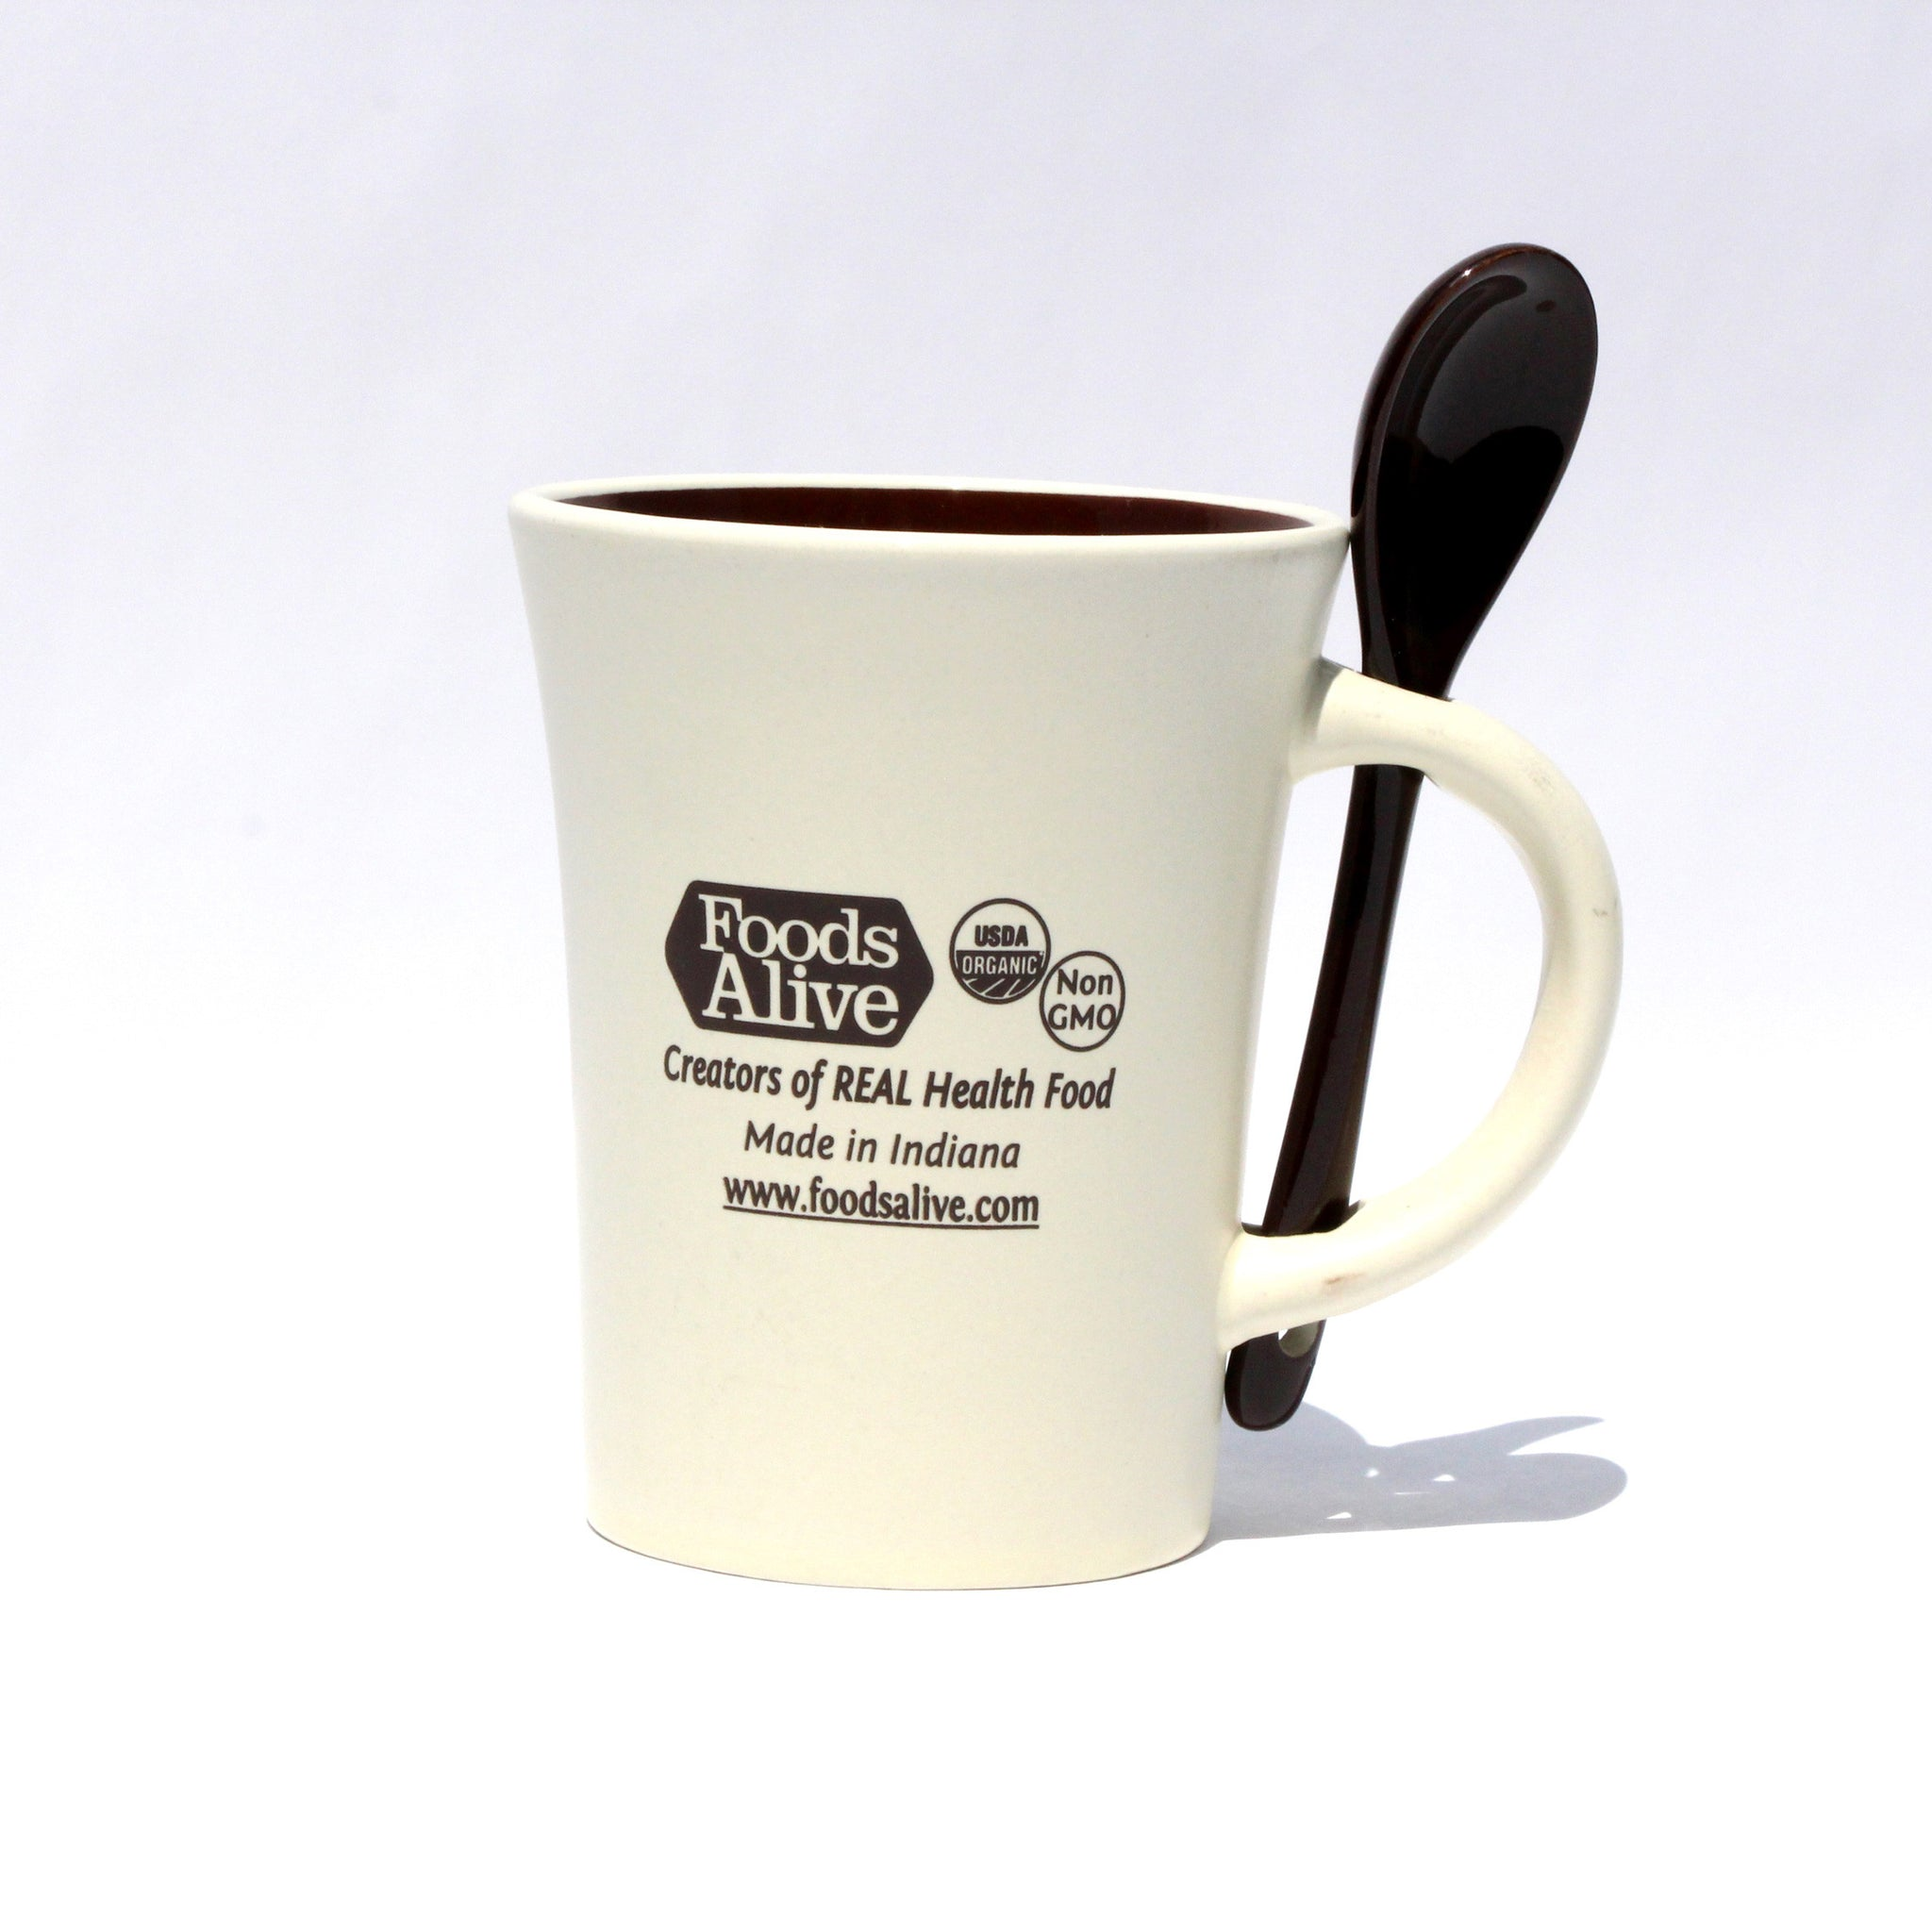 Foods Alive - Mug With Spoon